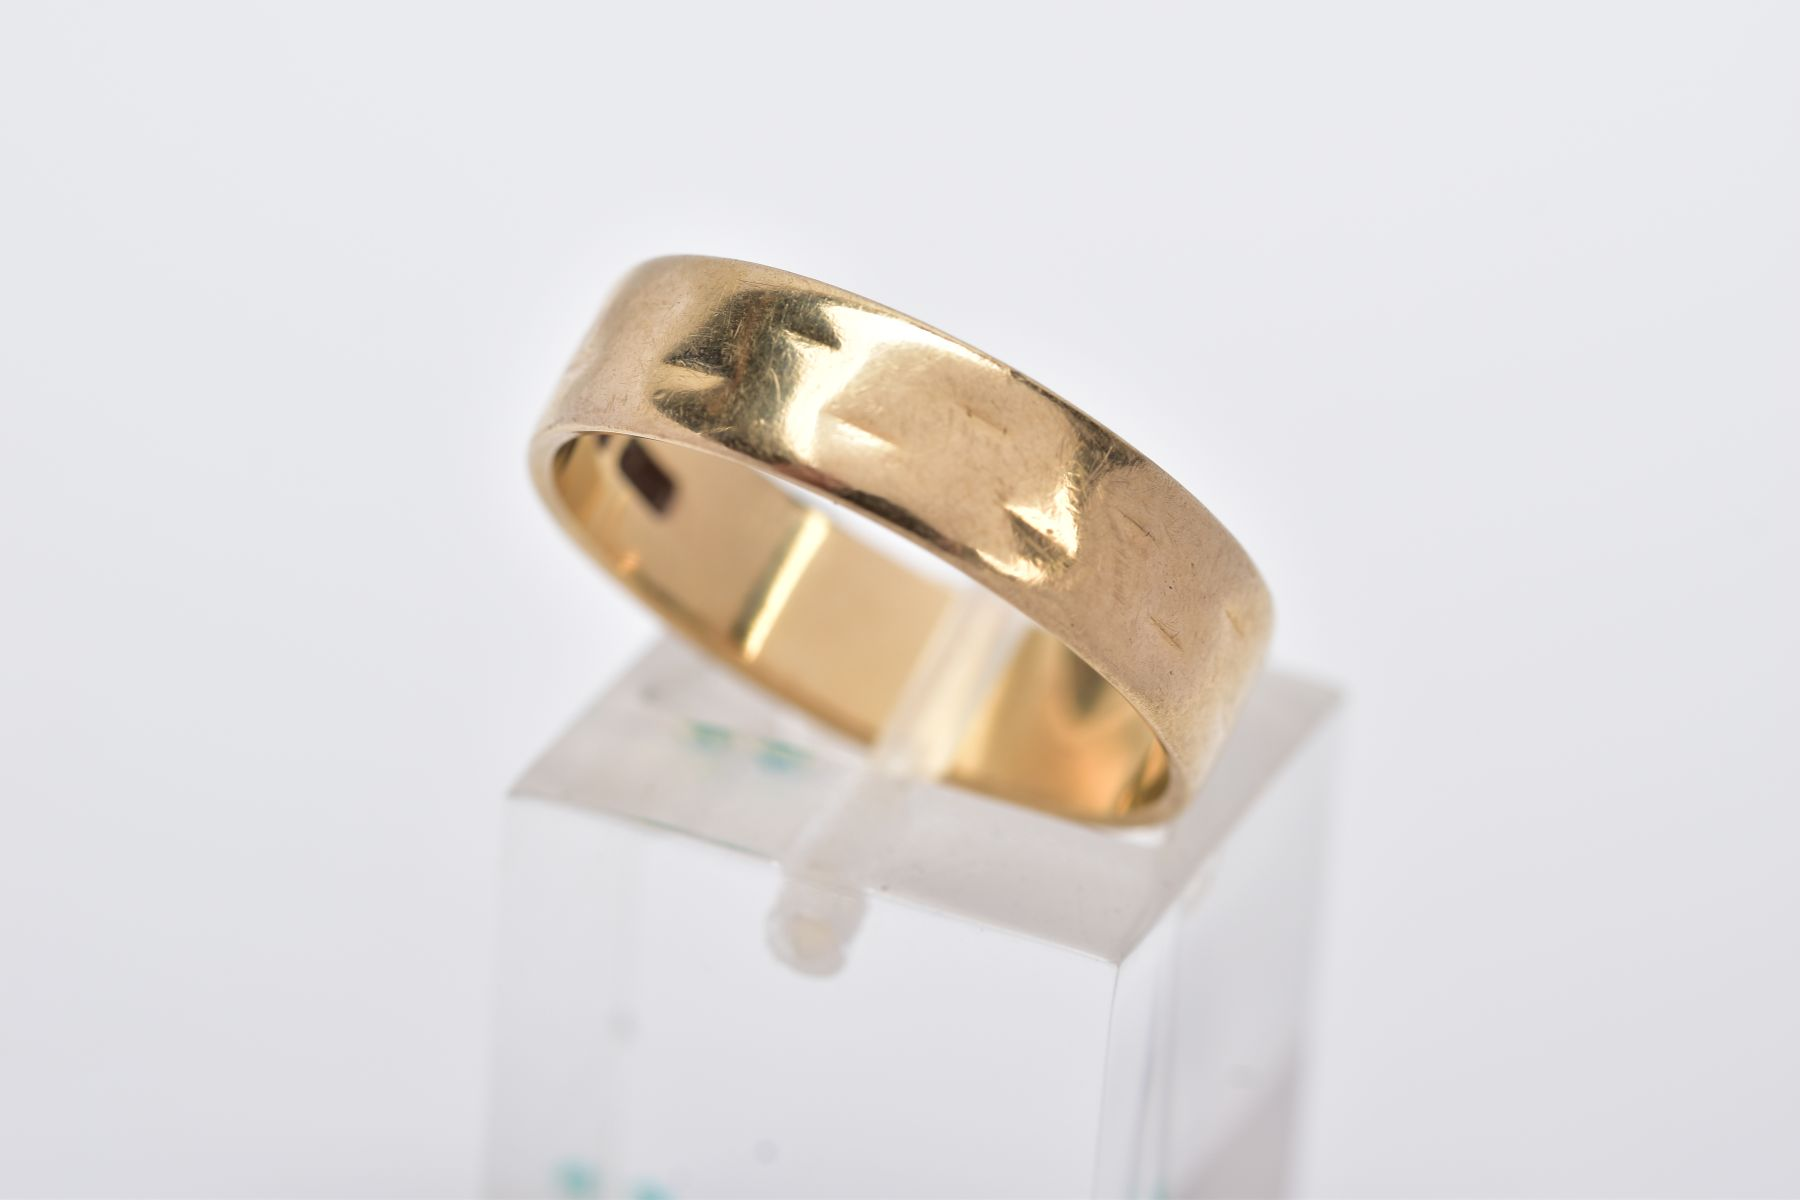 A 9CT GOLD WIDE BAND, slight textured effect, approximate width 5.5mm, hallmarked 9ct gold London,